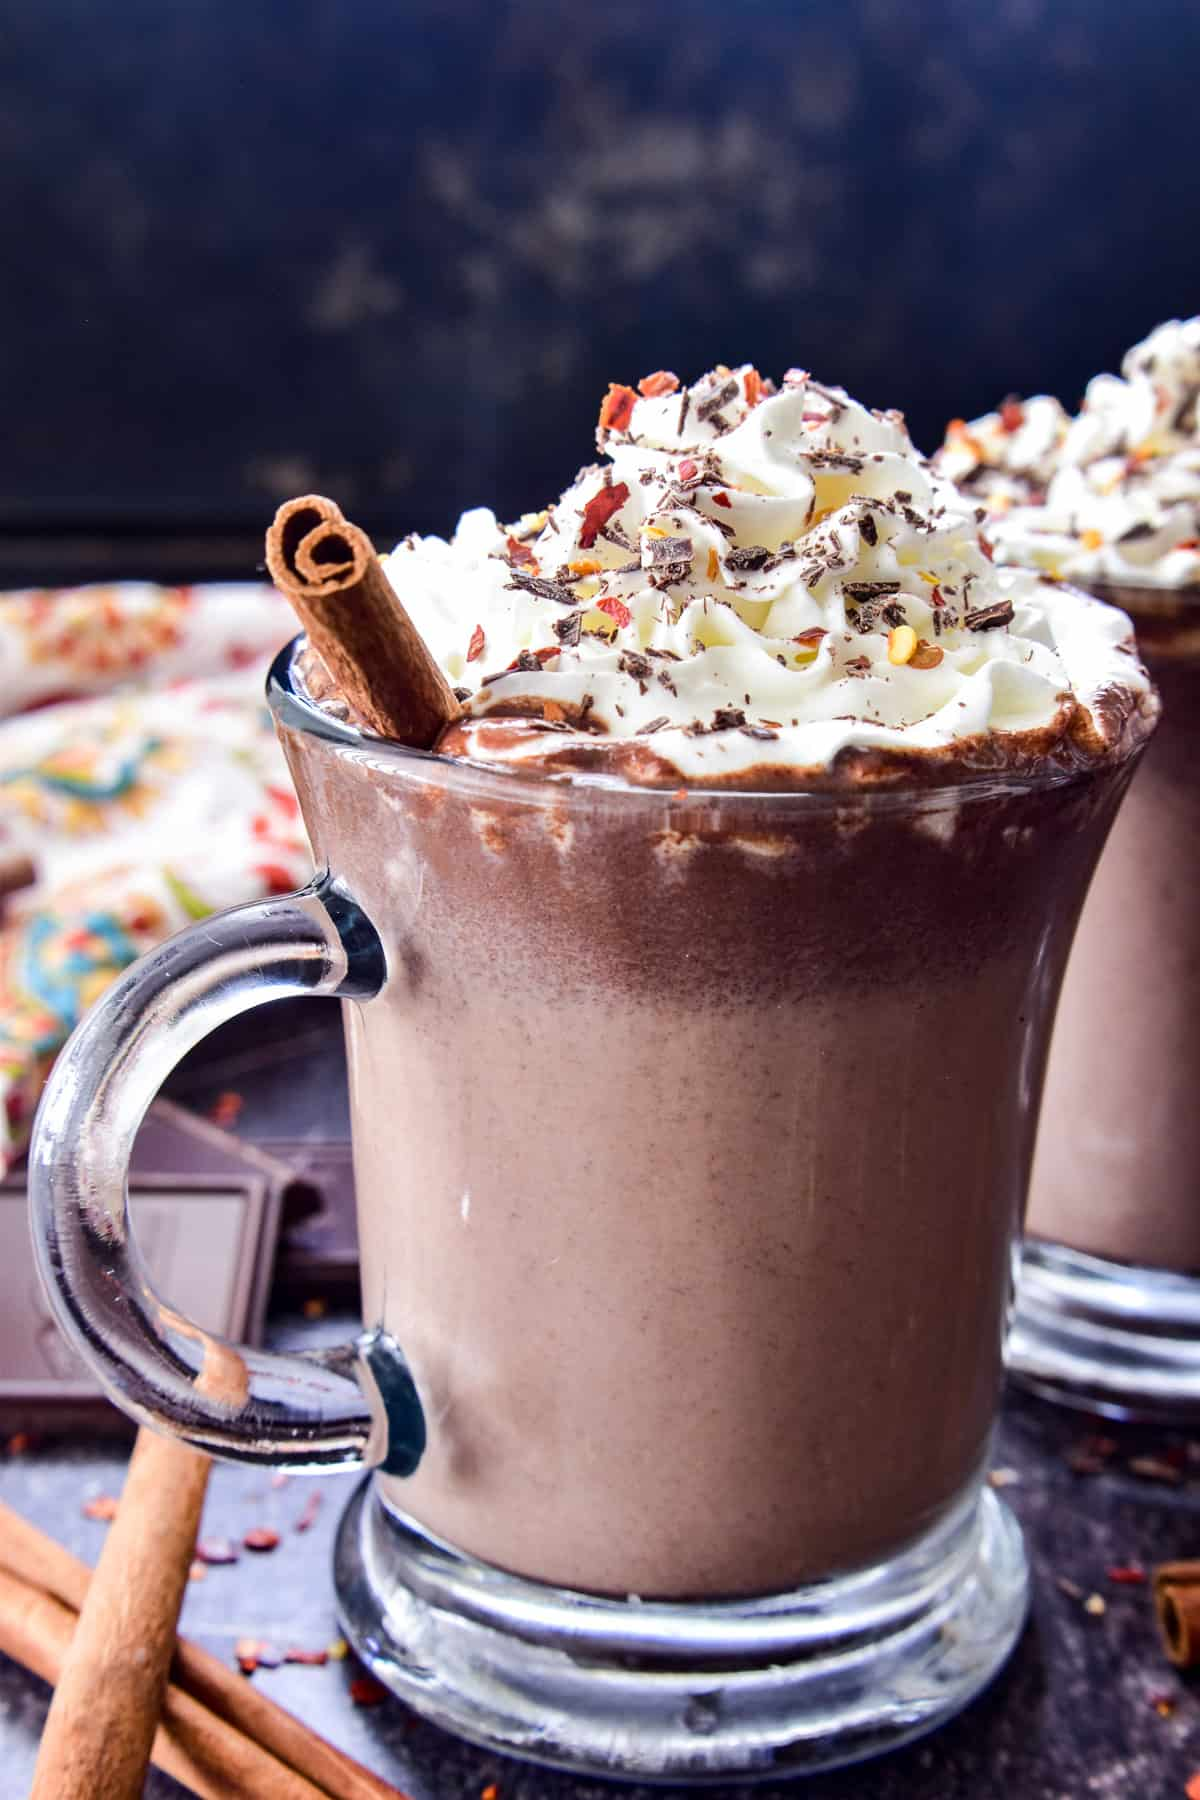 Mexican Hot Chocolate in a glass mug with whipped cream and garnishes